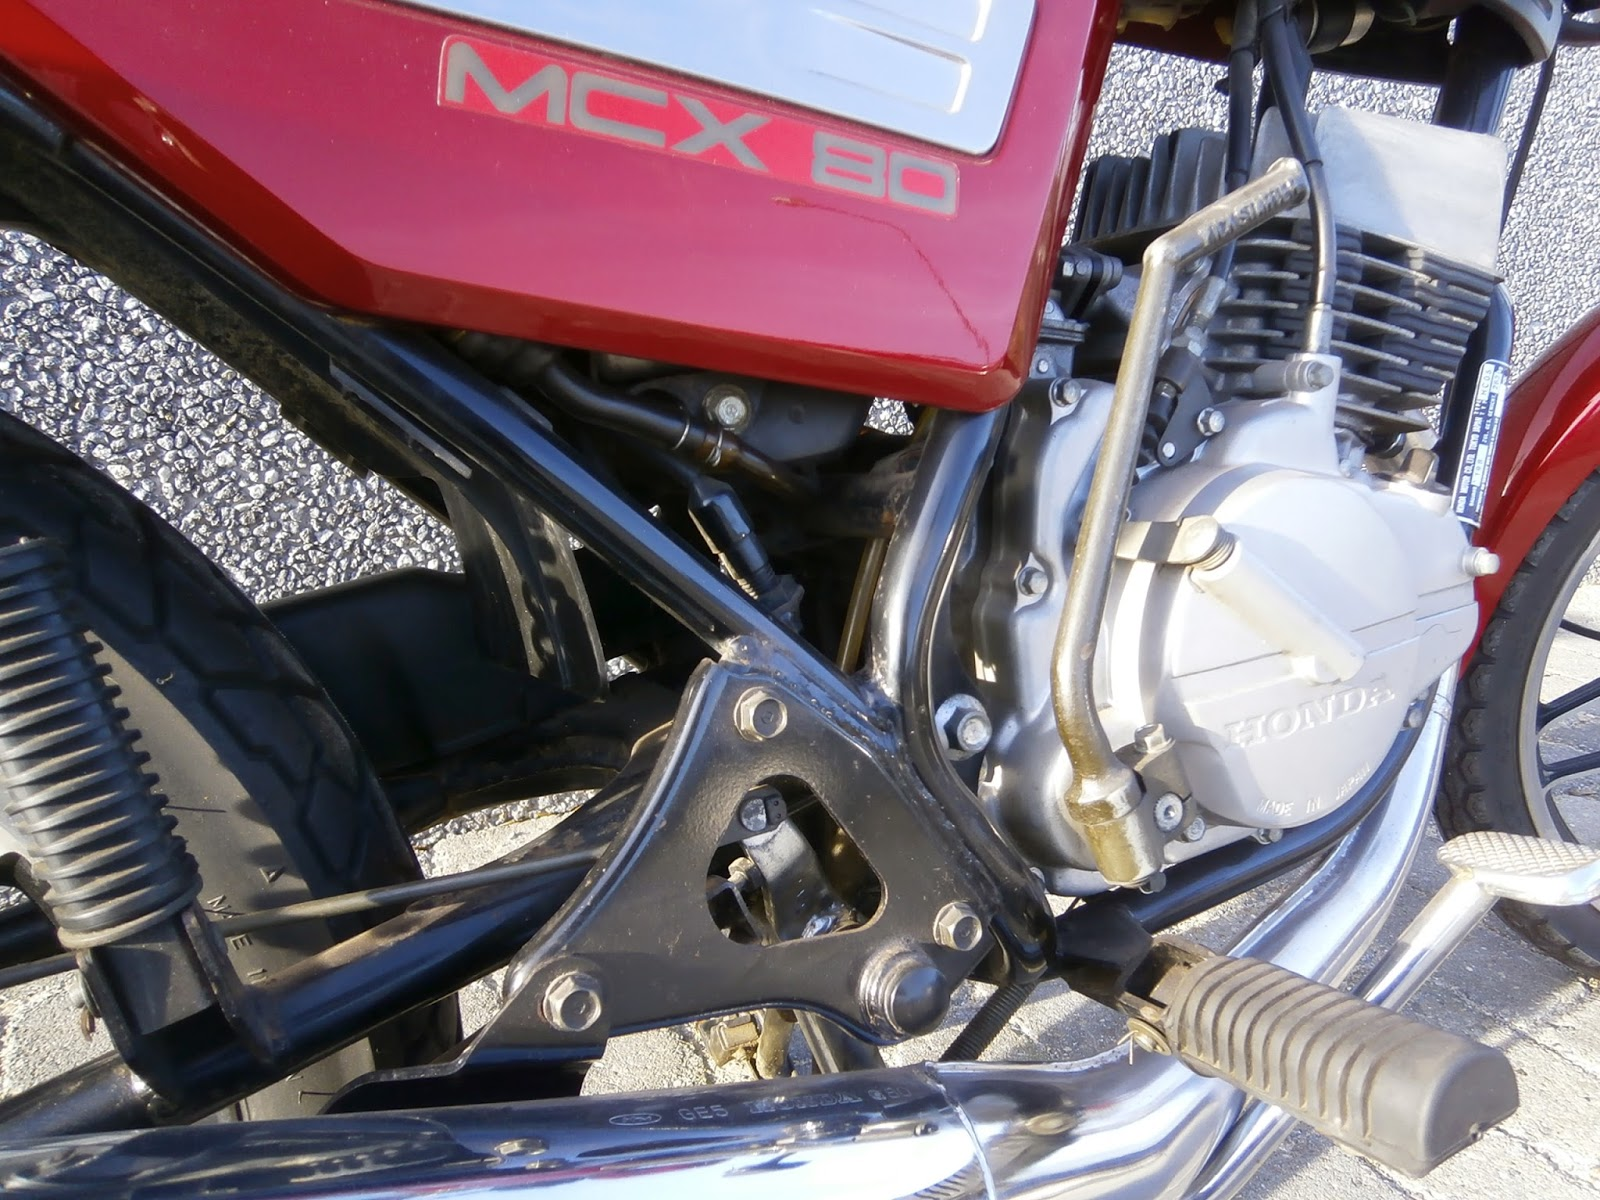 Honda mbx80 honda mcx80 for Honda financial services mailing address